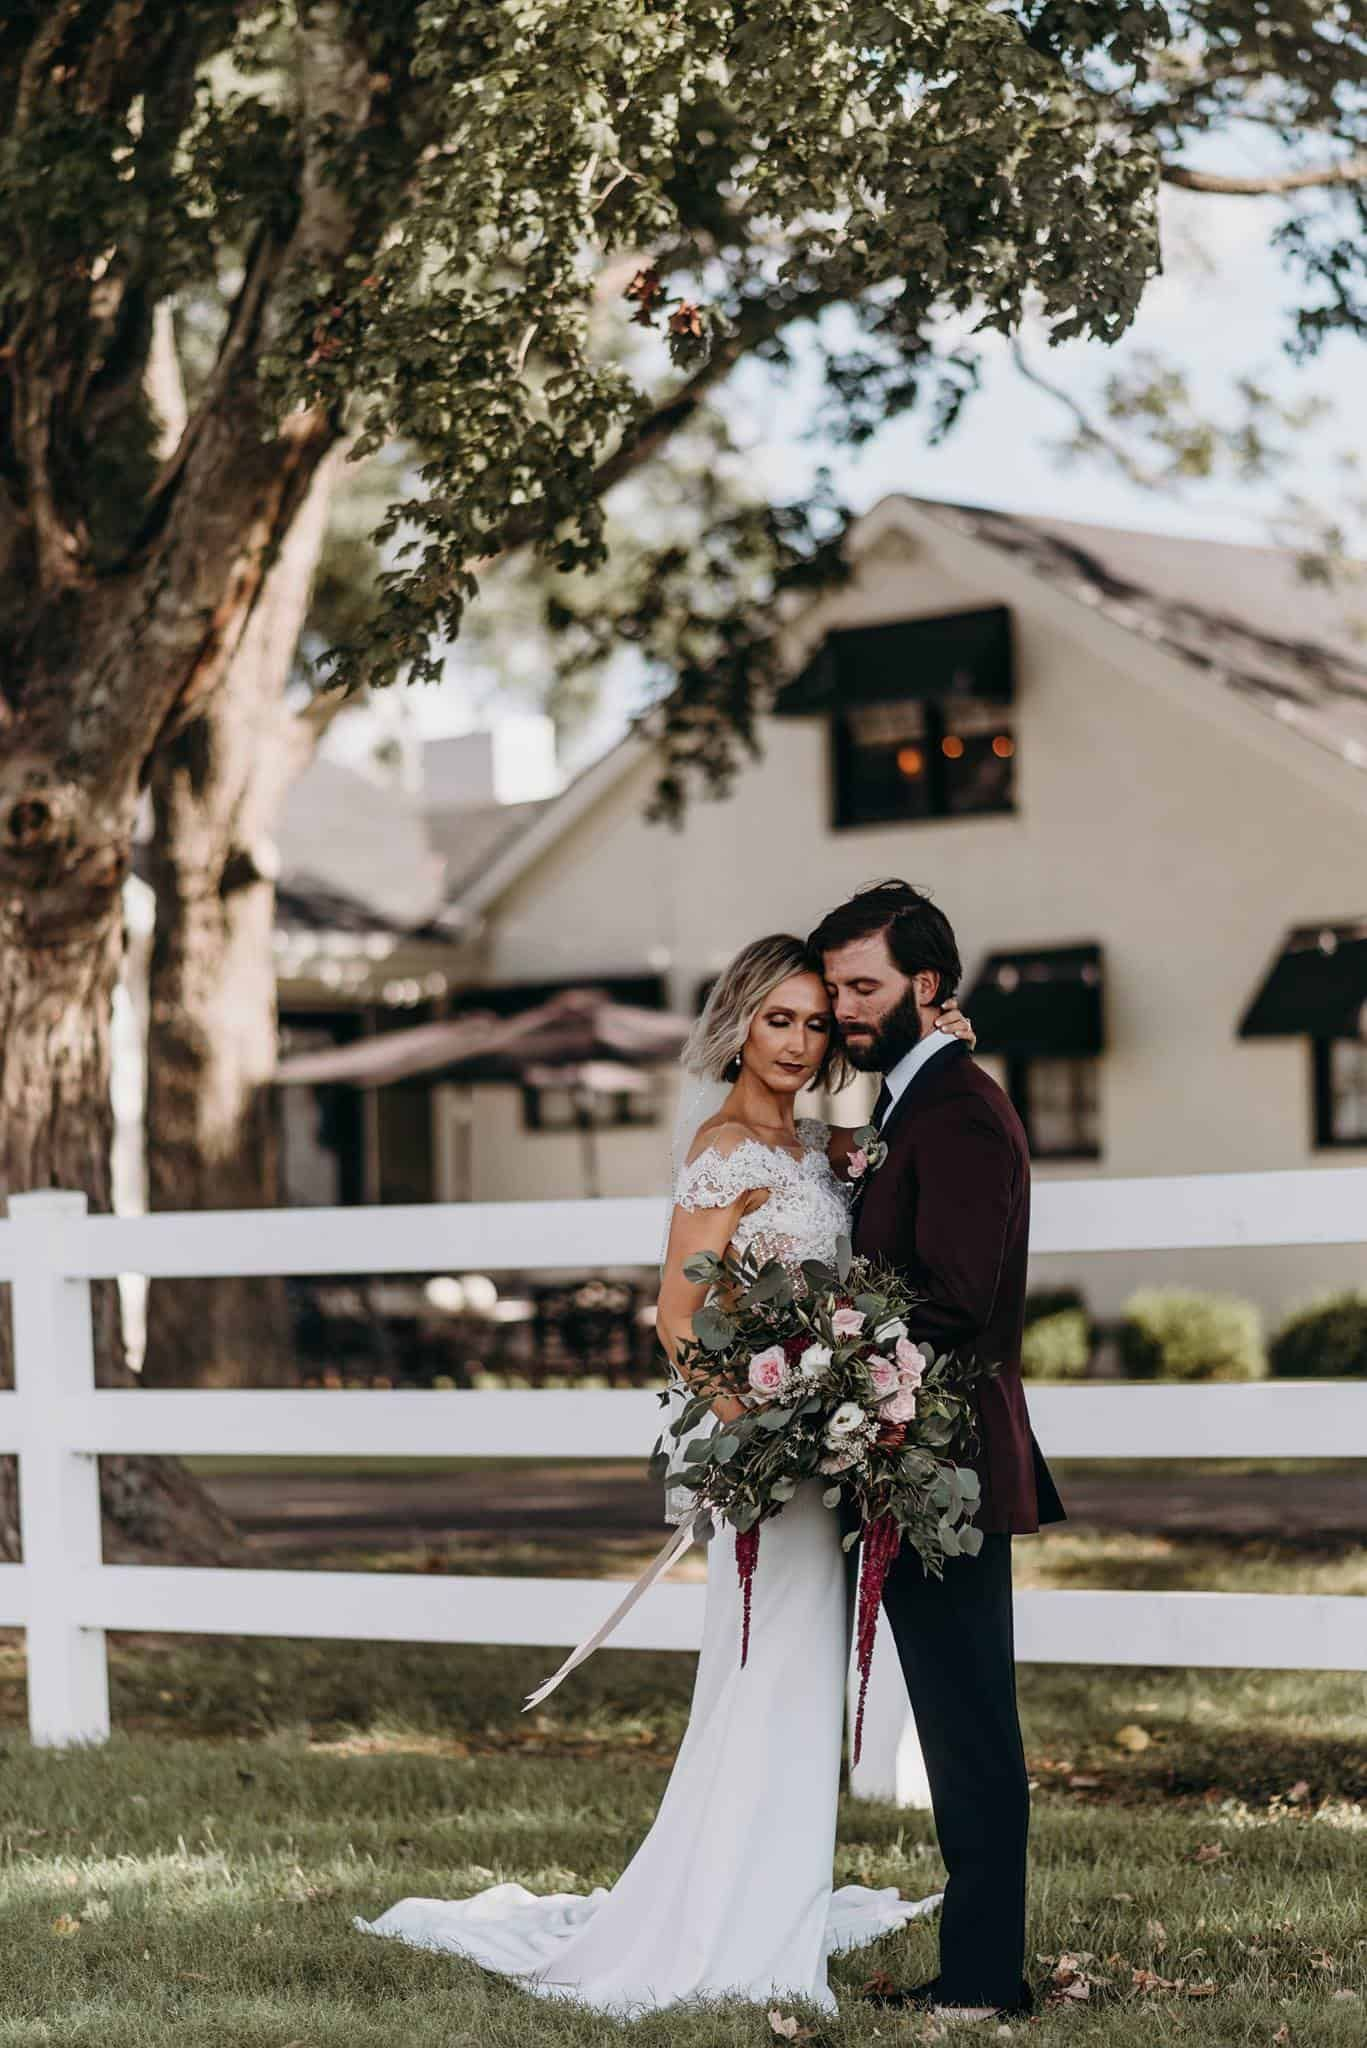 Tennessee Wedding Venues - The Prettiest Places For Your ...